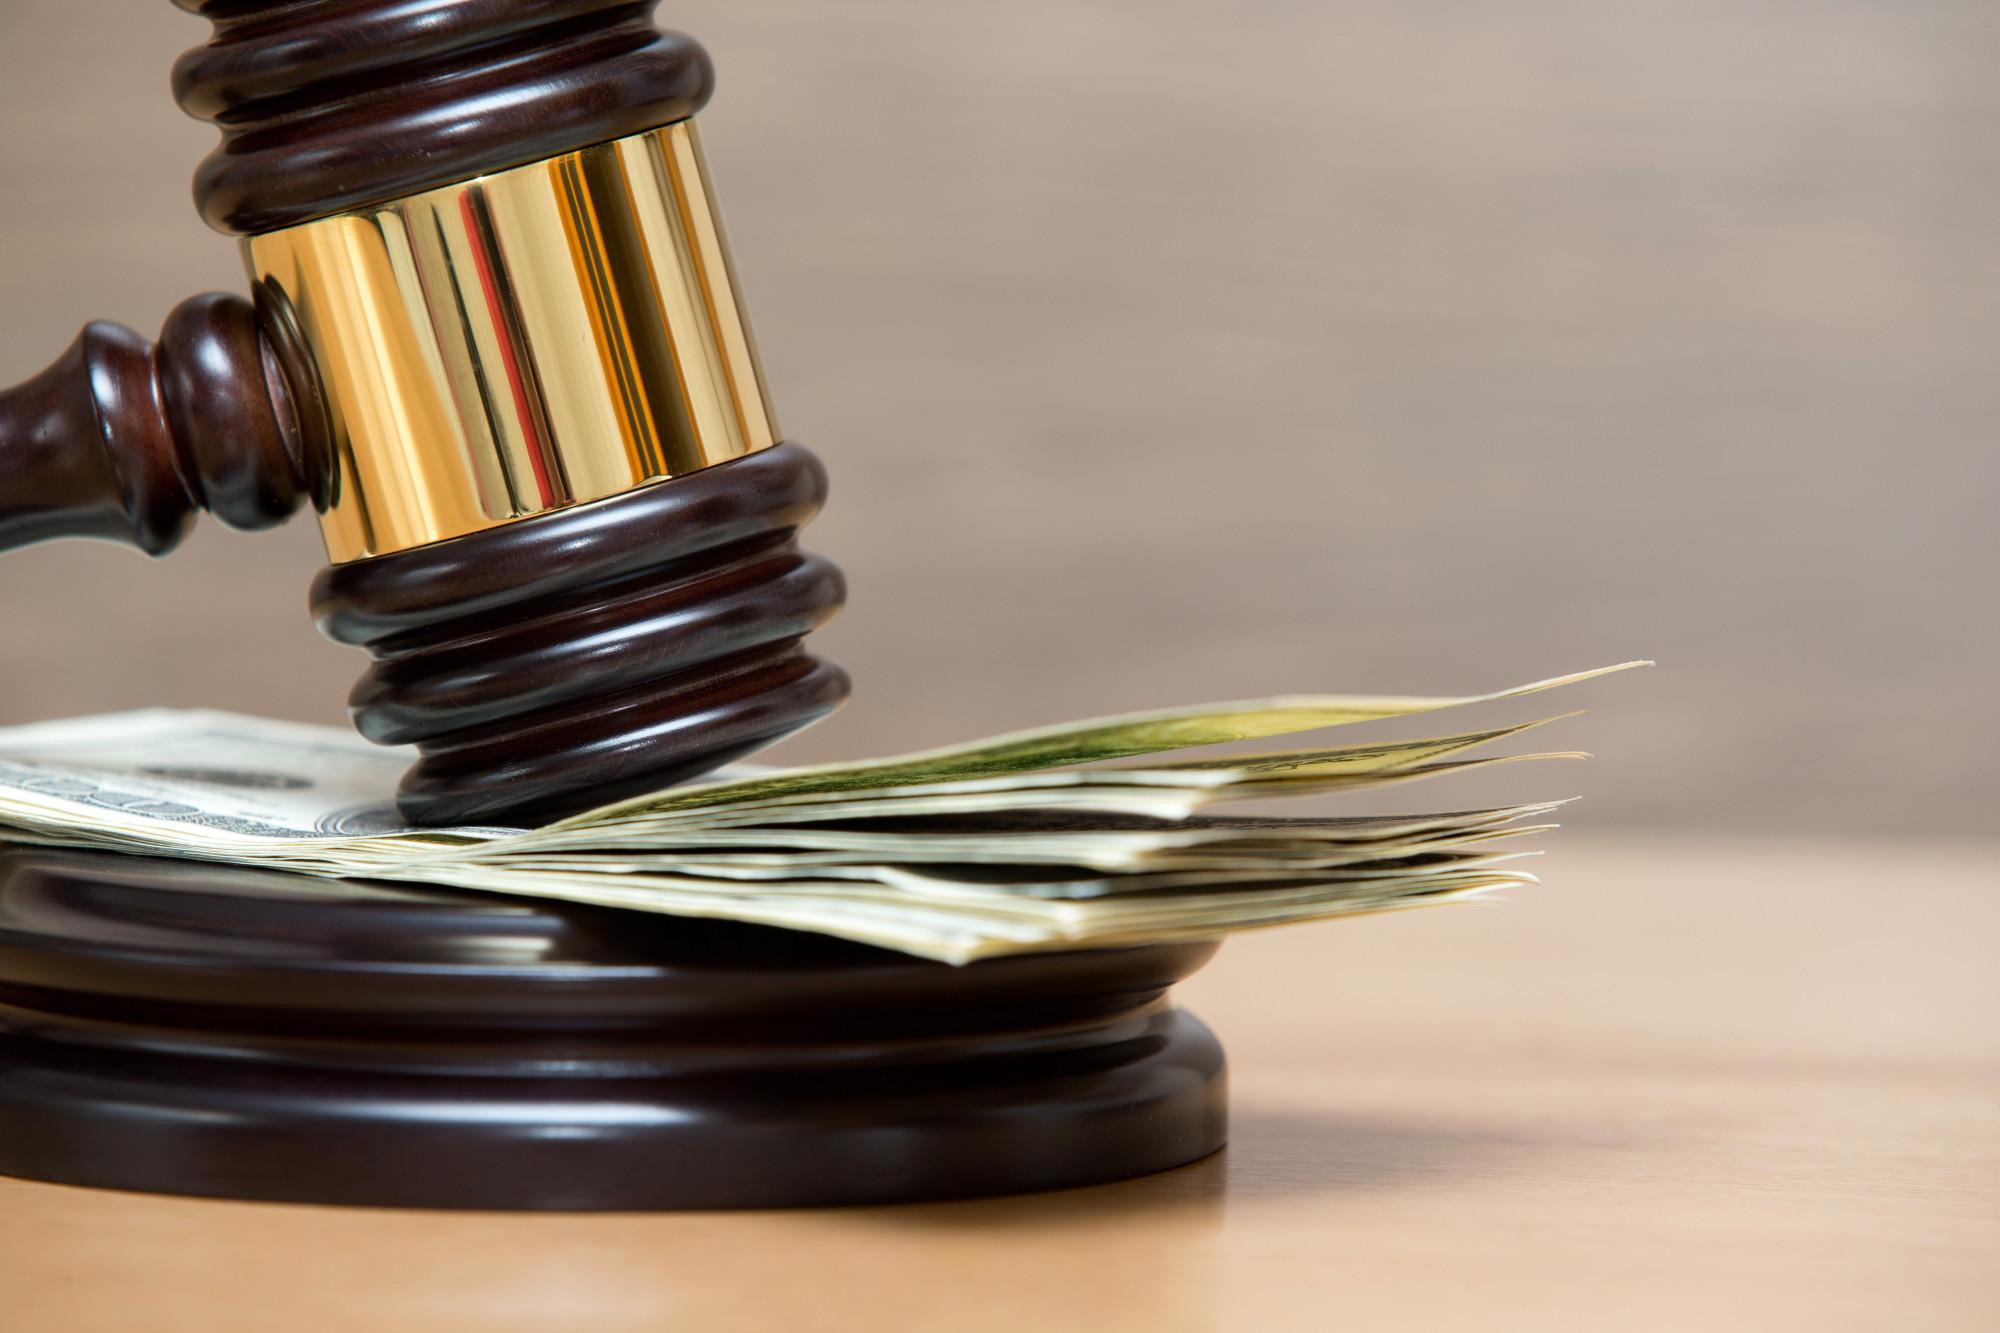 Personal Injury Compensation: 8 Tips on How to Build the Best Case